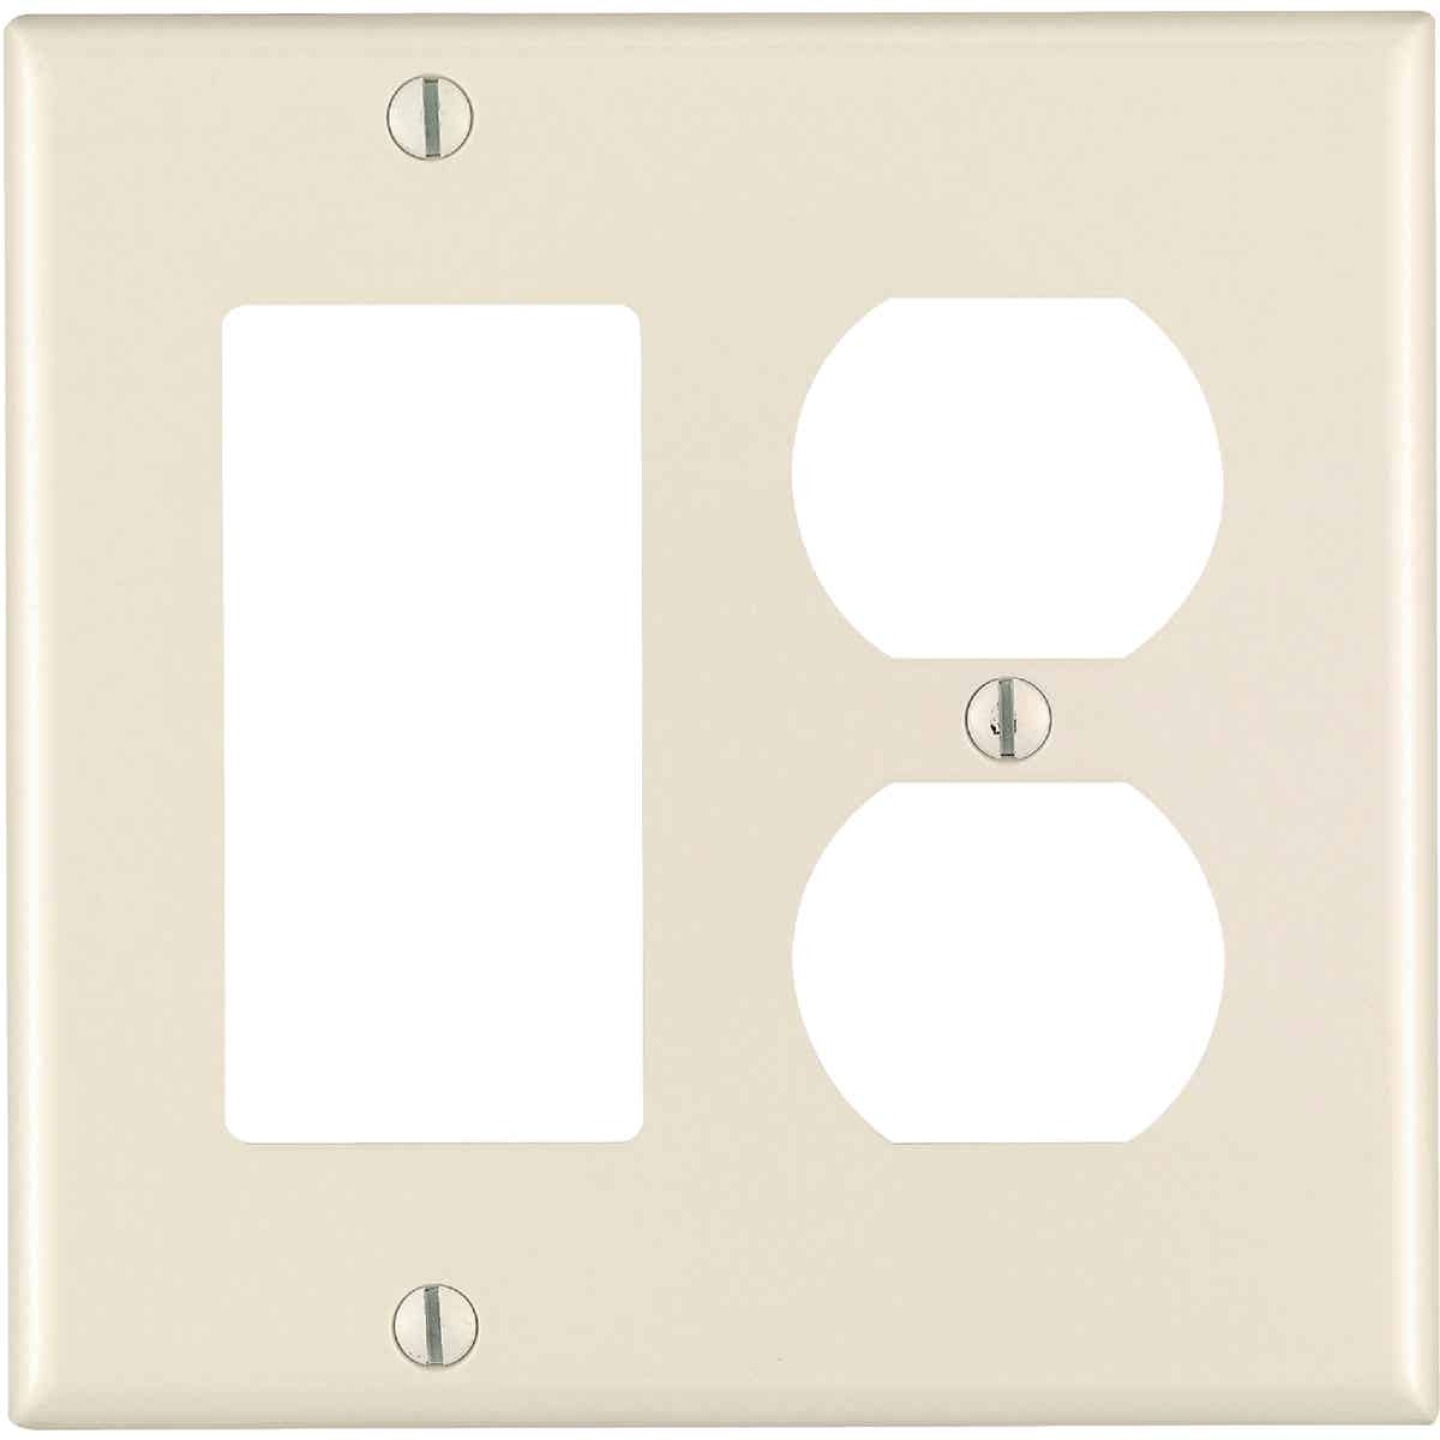 Leviton 2-Gang Smooth Plastic Single Rocker/Duplex Outlet Wall Plate, Light Almond Image 1